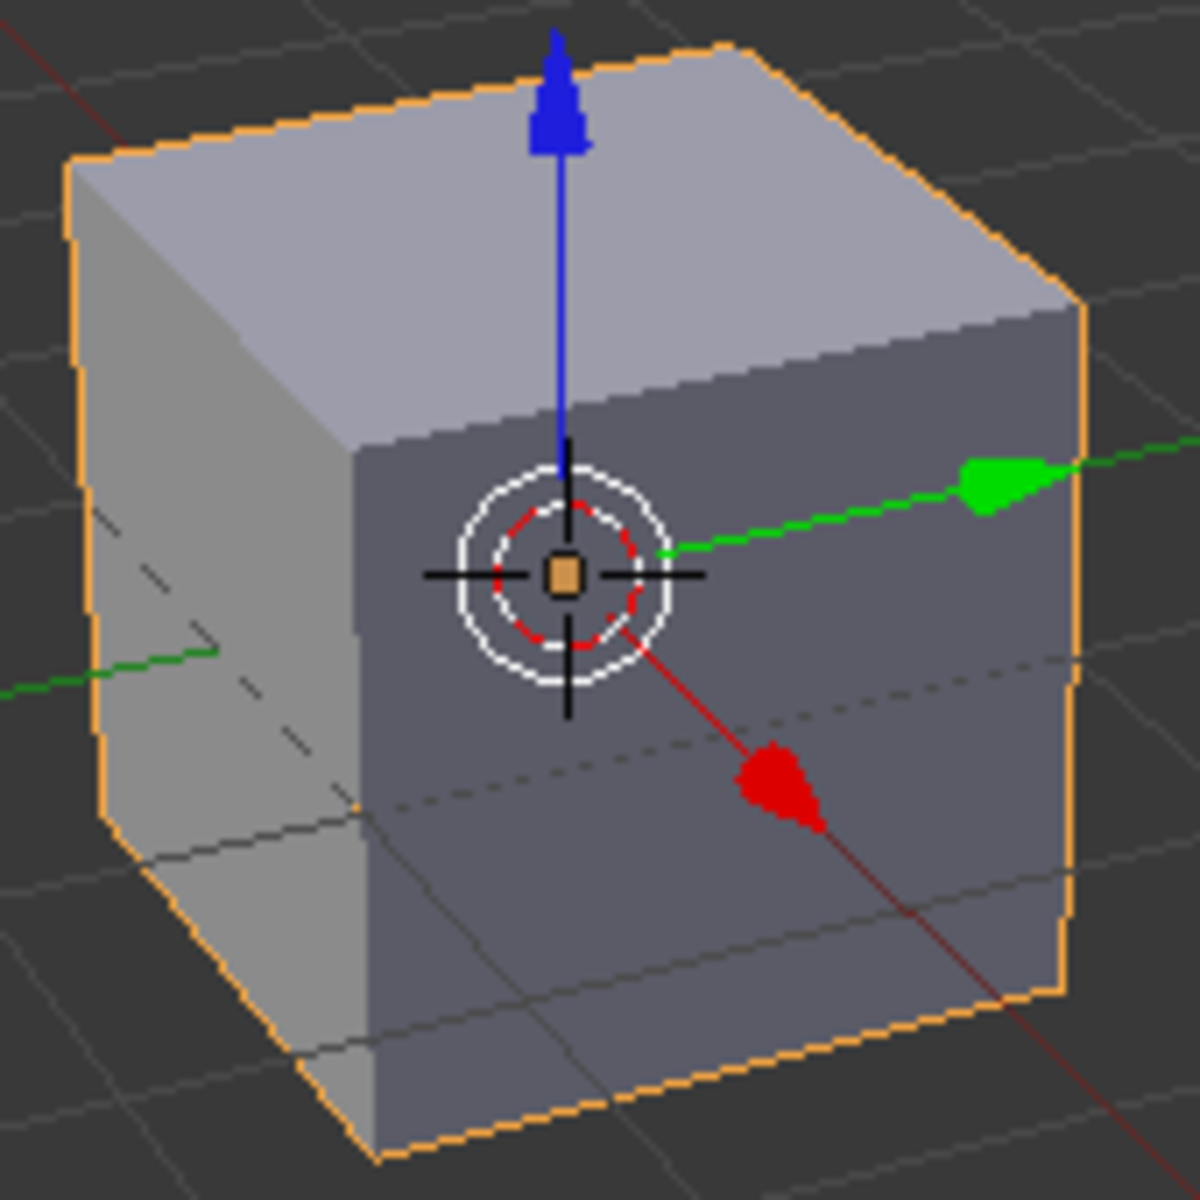 The 3D Manipulator is visible inside the cube.